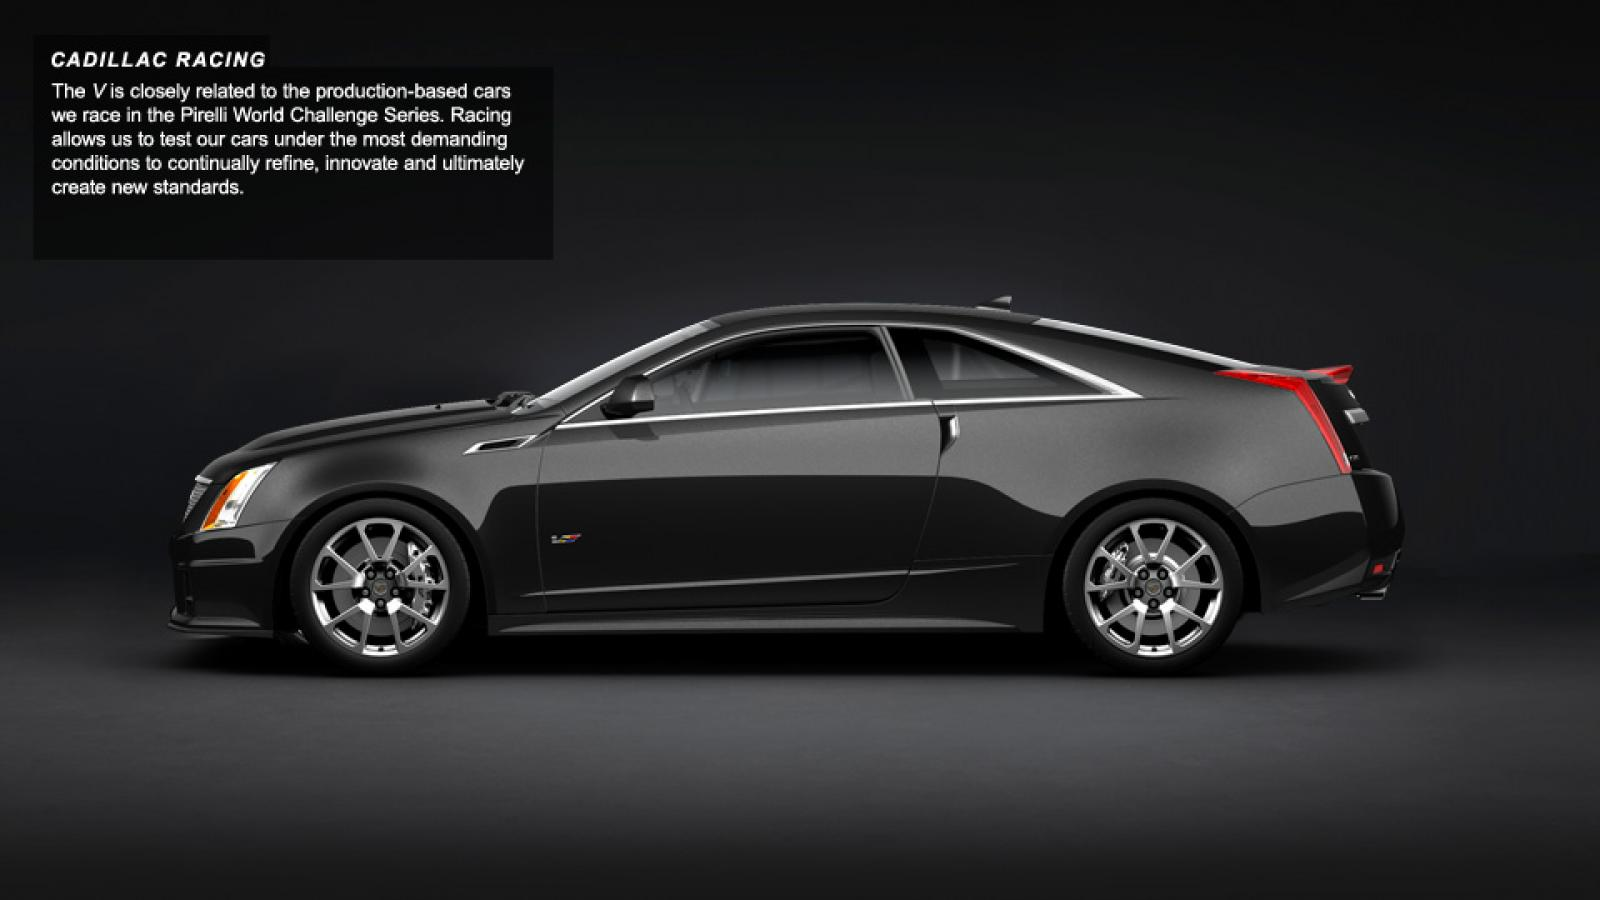 2012 cadillac cts v coupe information and photos zombiedrive. Black Bedroom Furniture Sets. Home Design Ideas